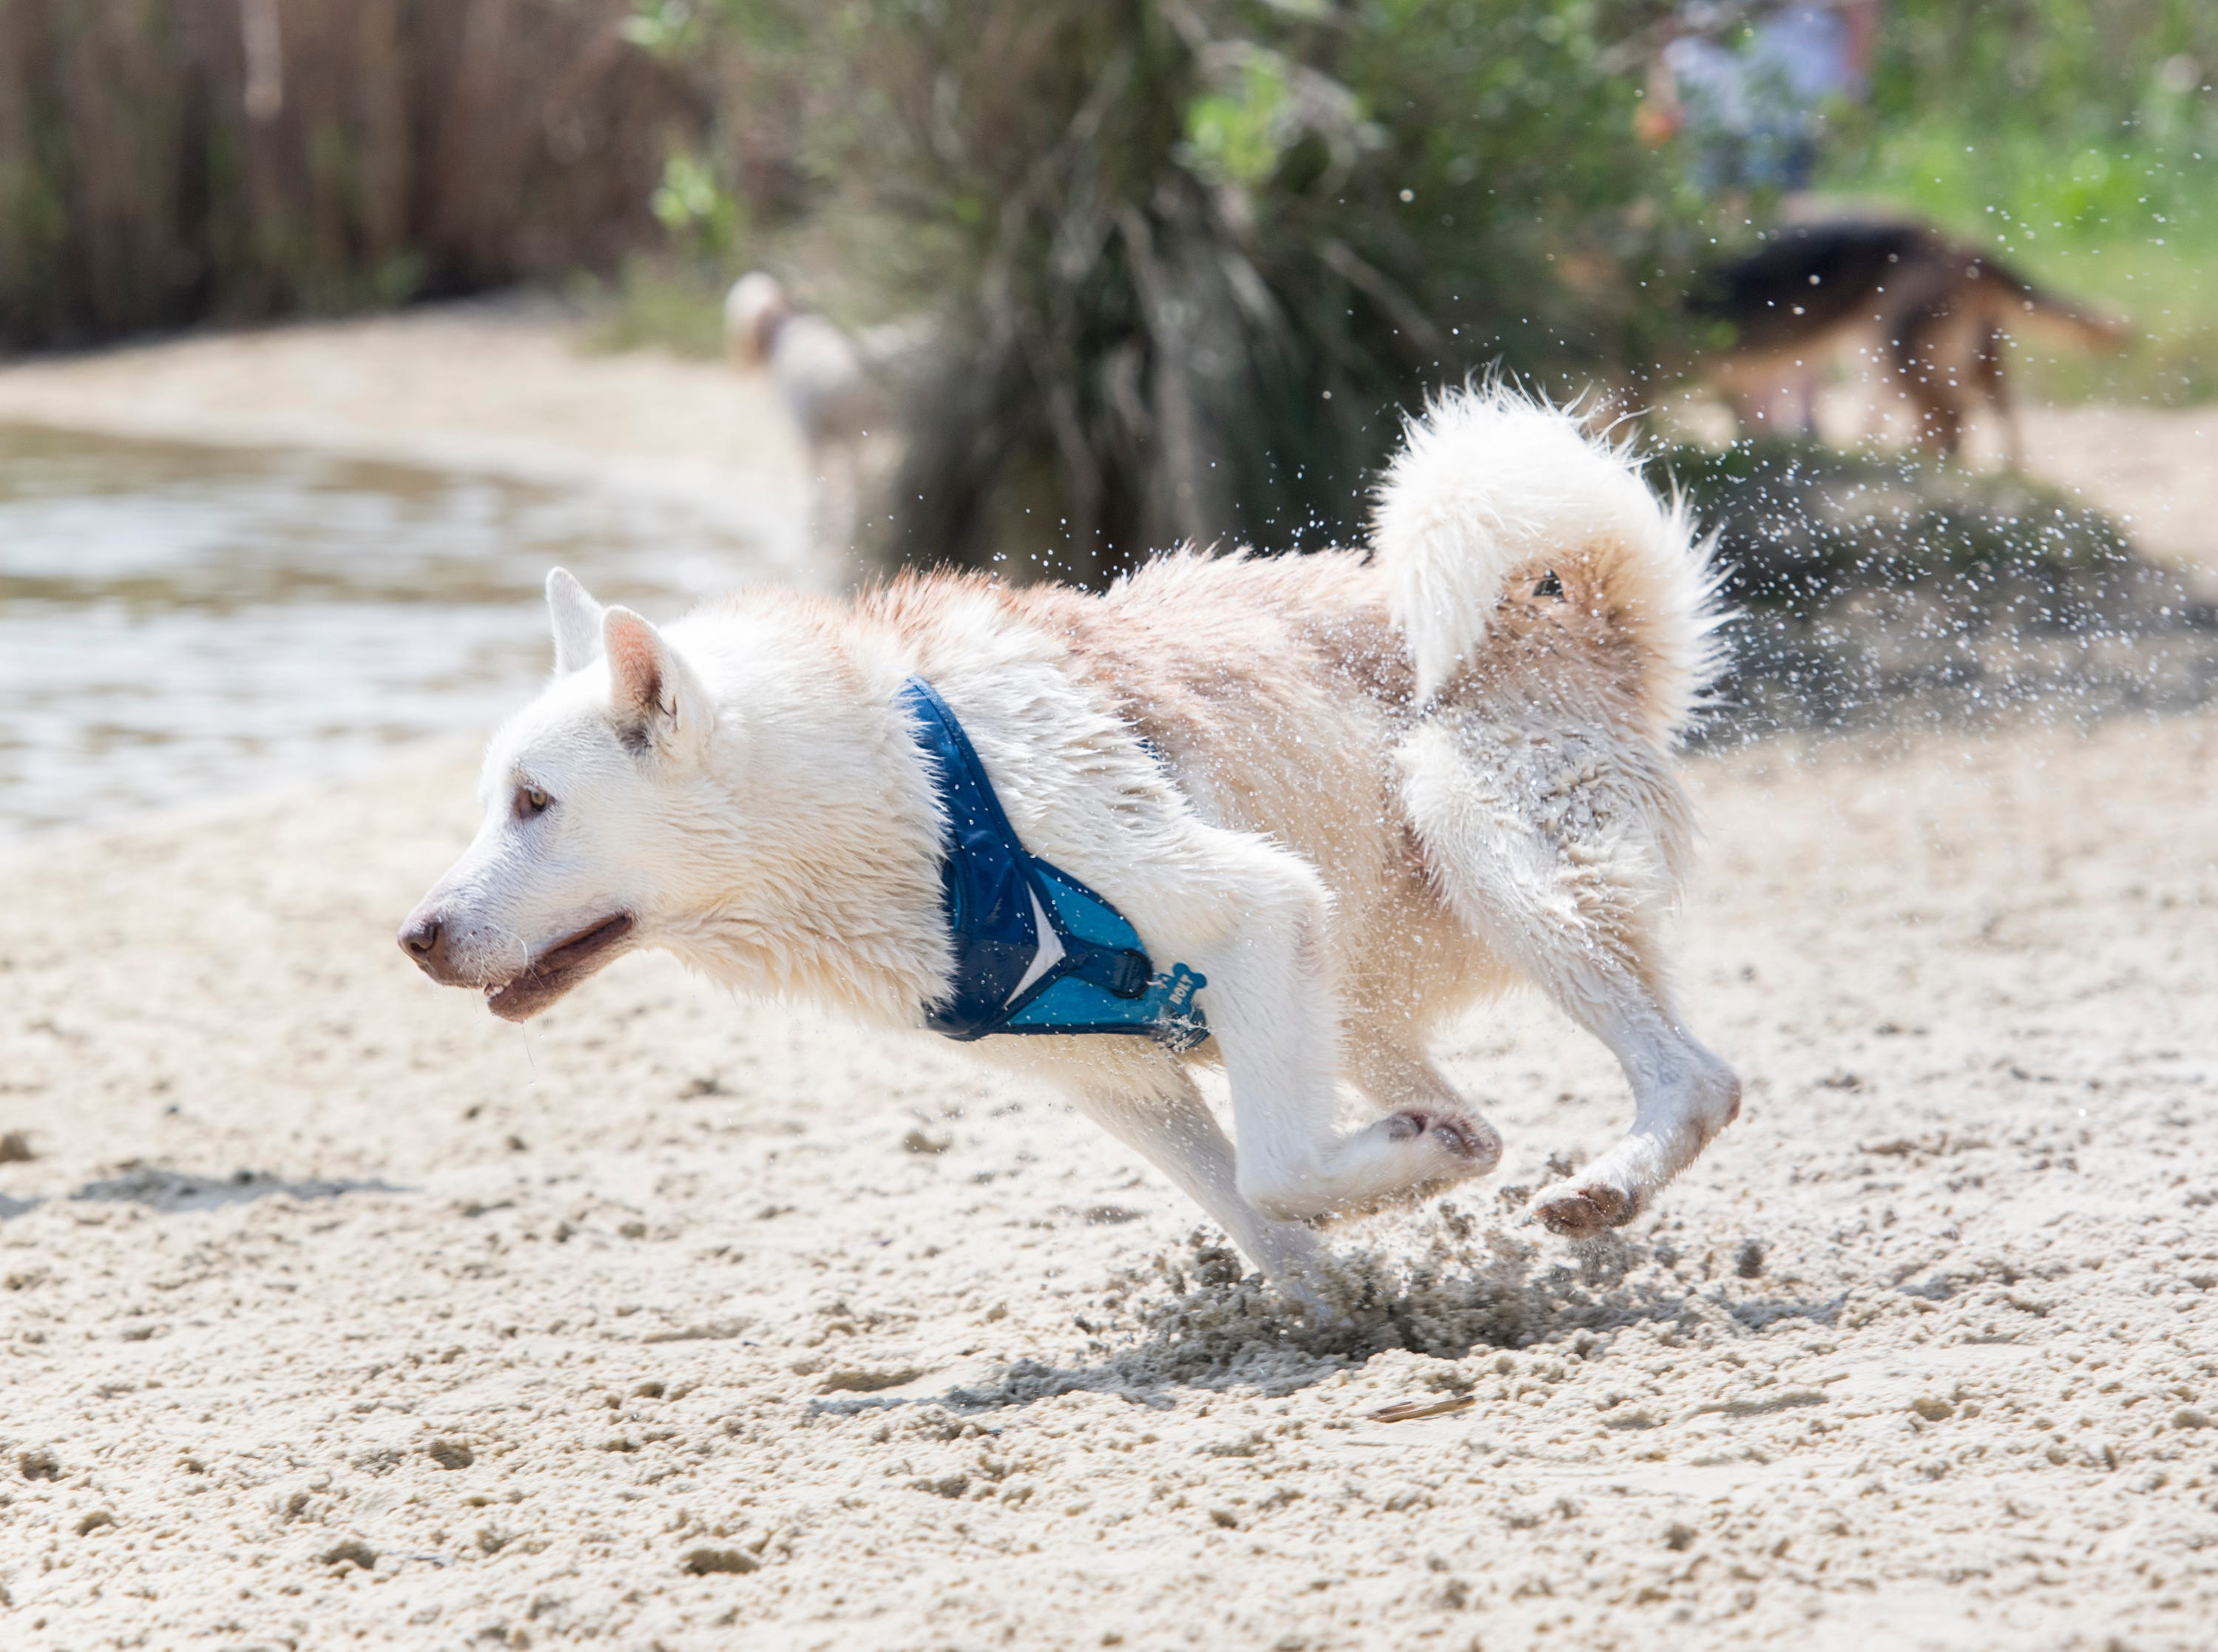 Bolt races around the sand at Bayview Park's dog park in Pensacola on Tuesday, March 12, 2019.  Navarre residents hope to get a similar dog park for their city.